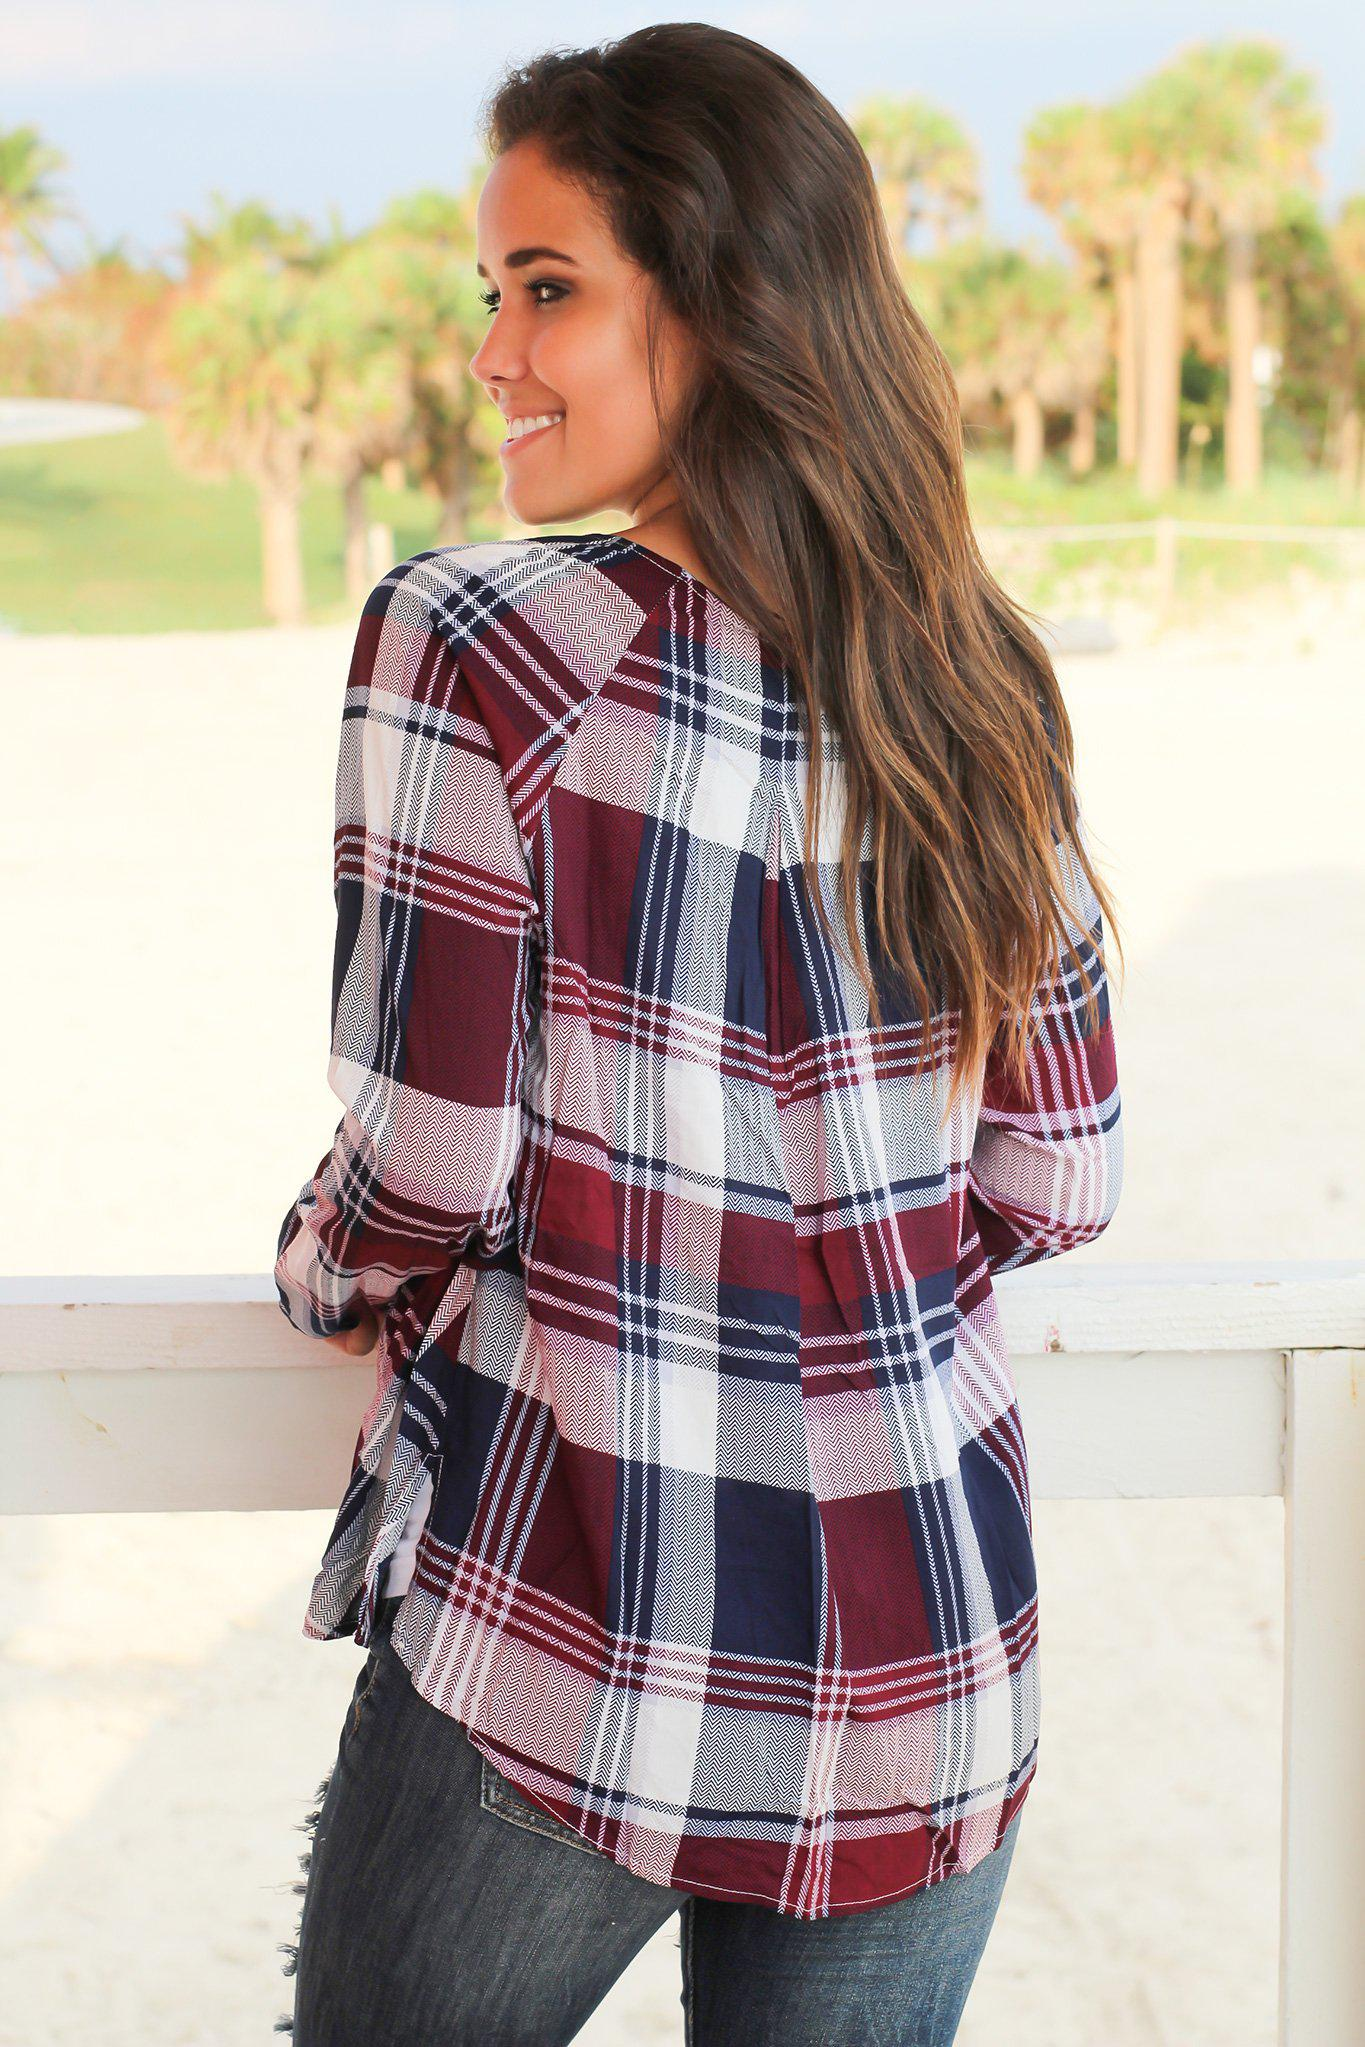 Burgundy and Navy Plaid Criss Cross Draped Top